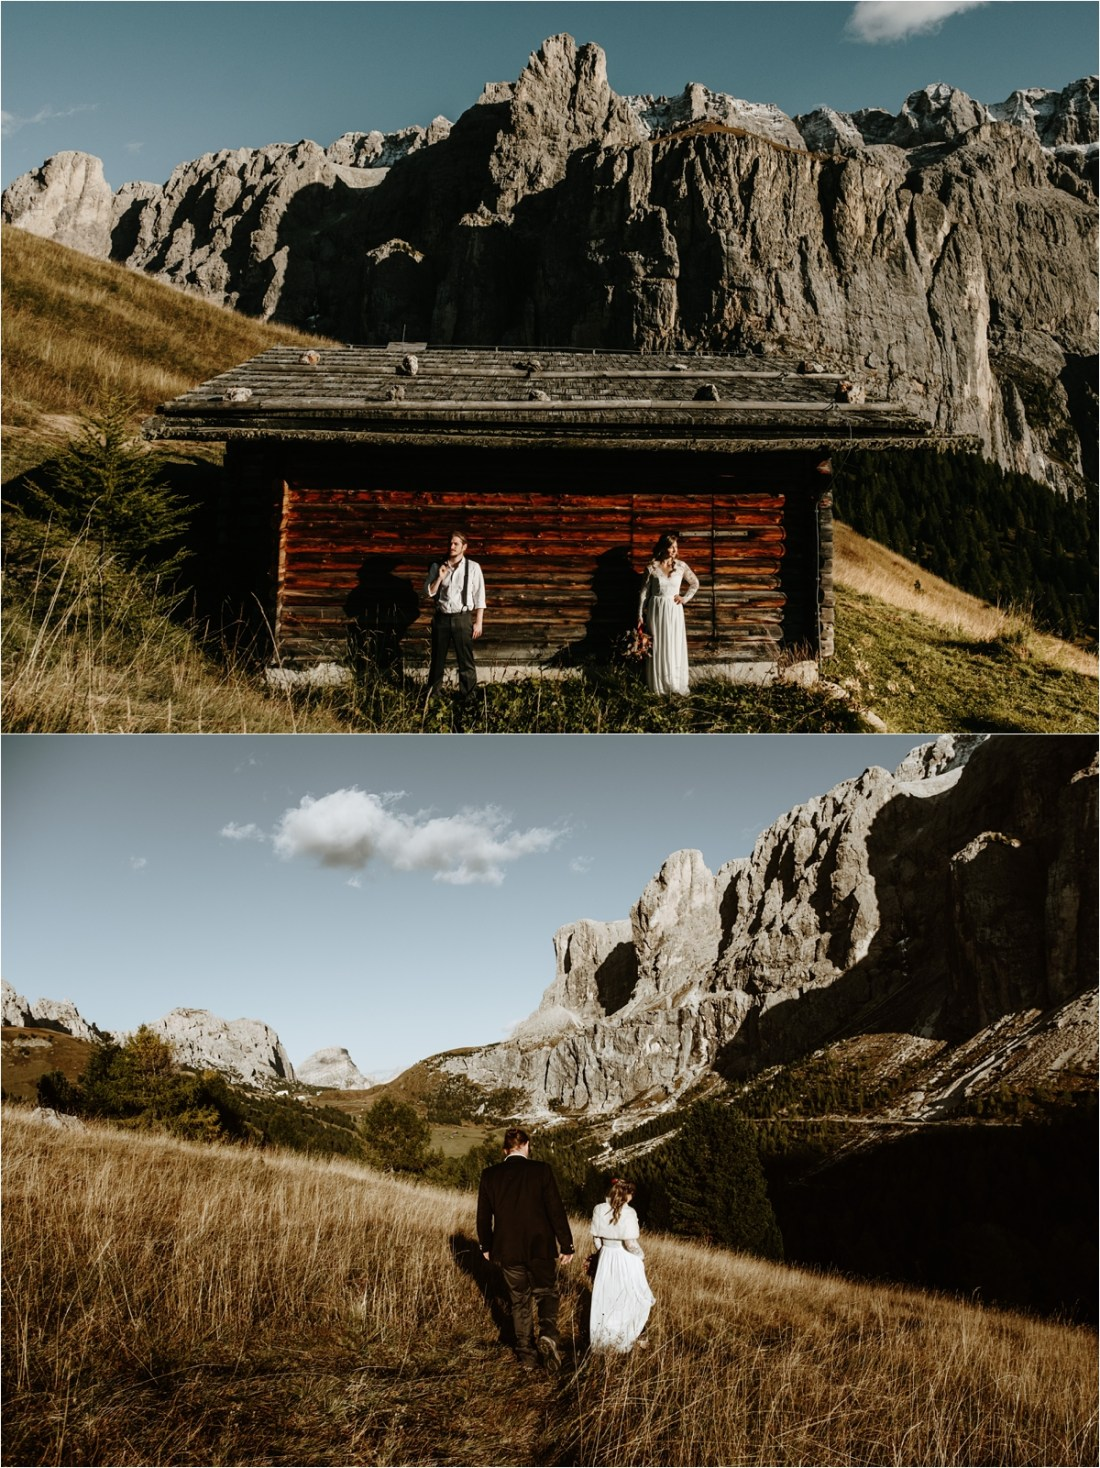 An elopement at a traditional wooden farmer's hut in the Dolomites. Photos by Wild Connections Photography